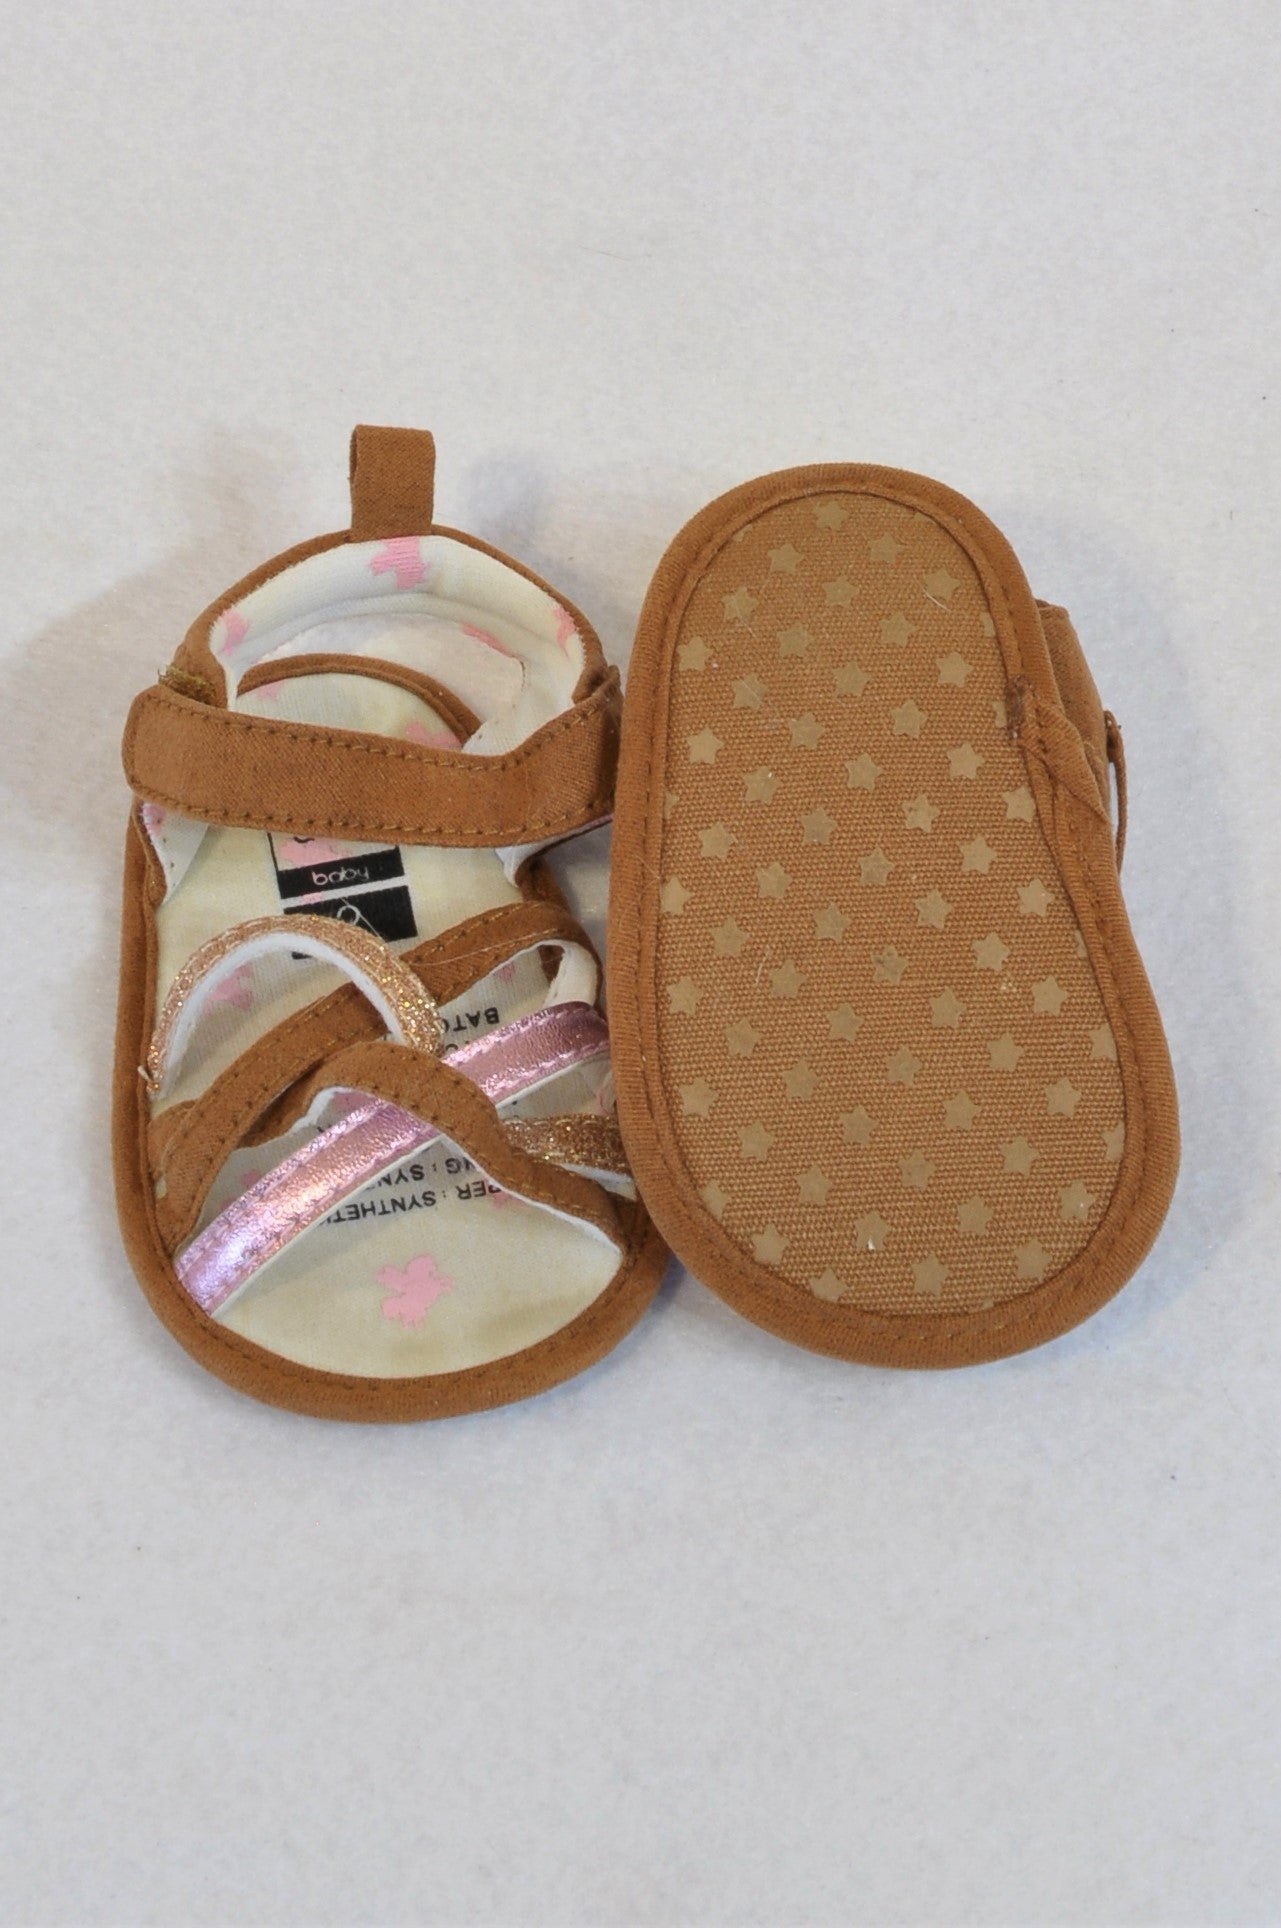 New Kids & Co Size 2 Brown Microsuede & Metallic Sandals Girls 6-9 months